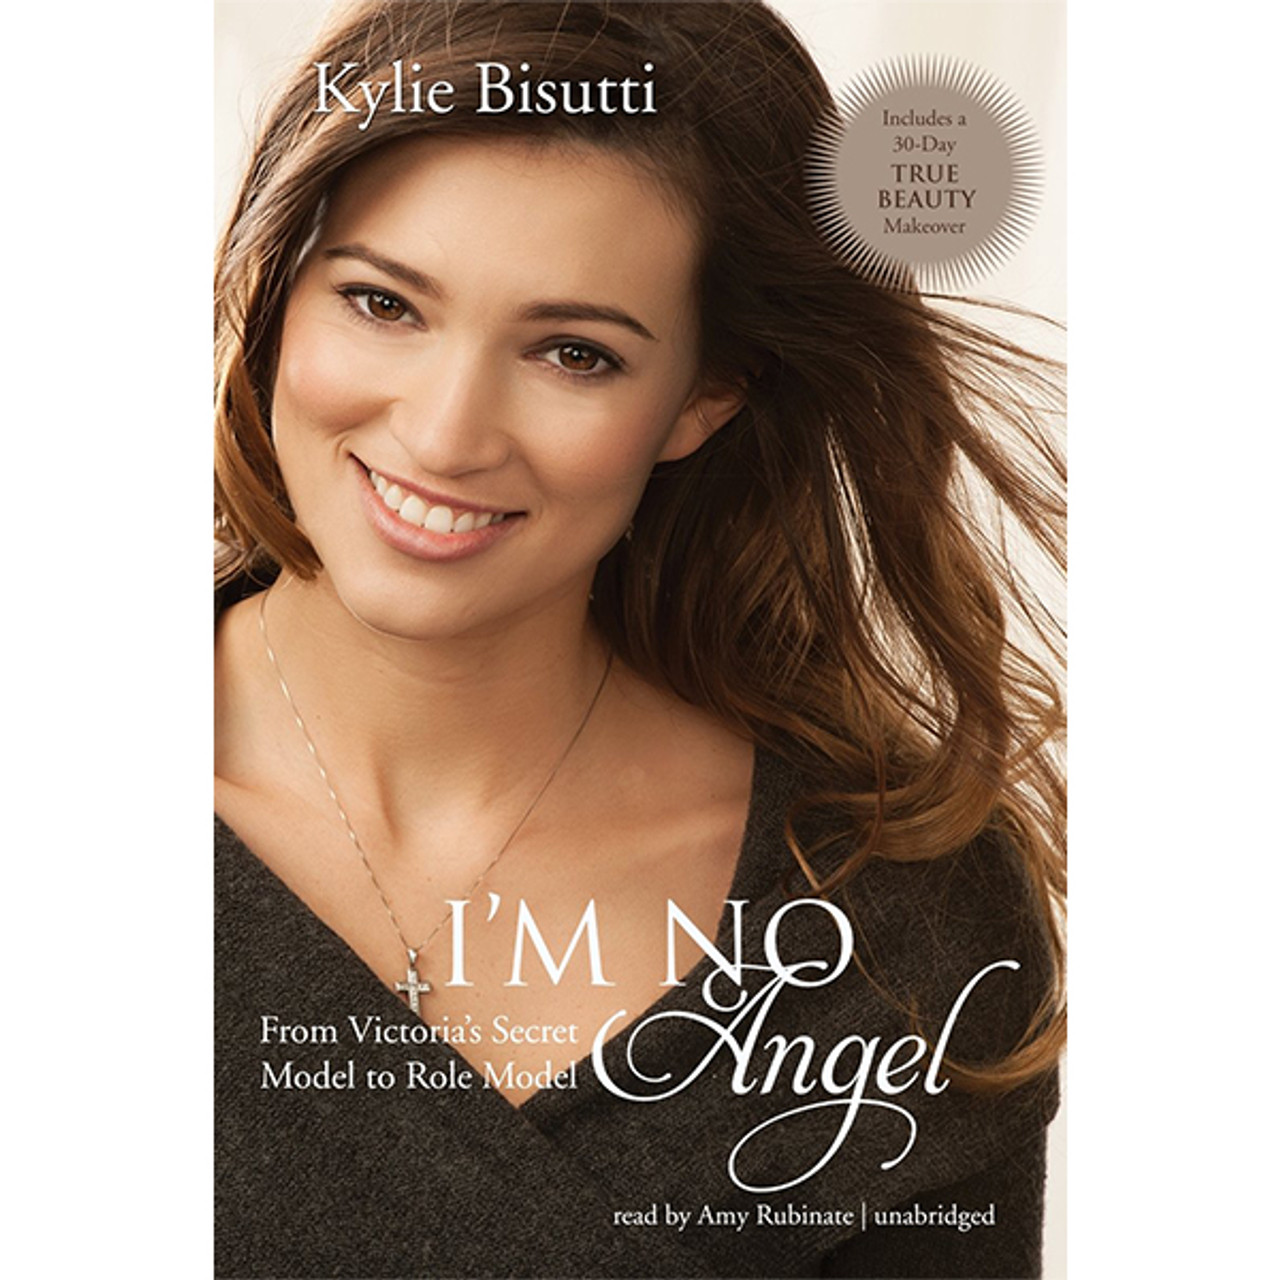 I'm No Angel: From Victoria's Secret Model to Role Model (Hardcover)